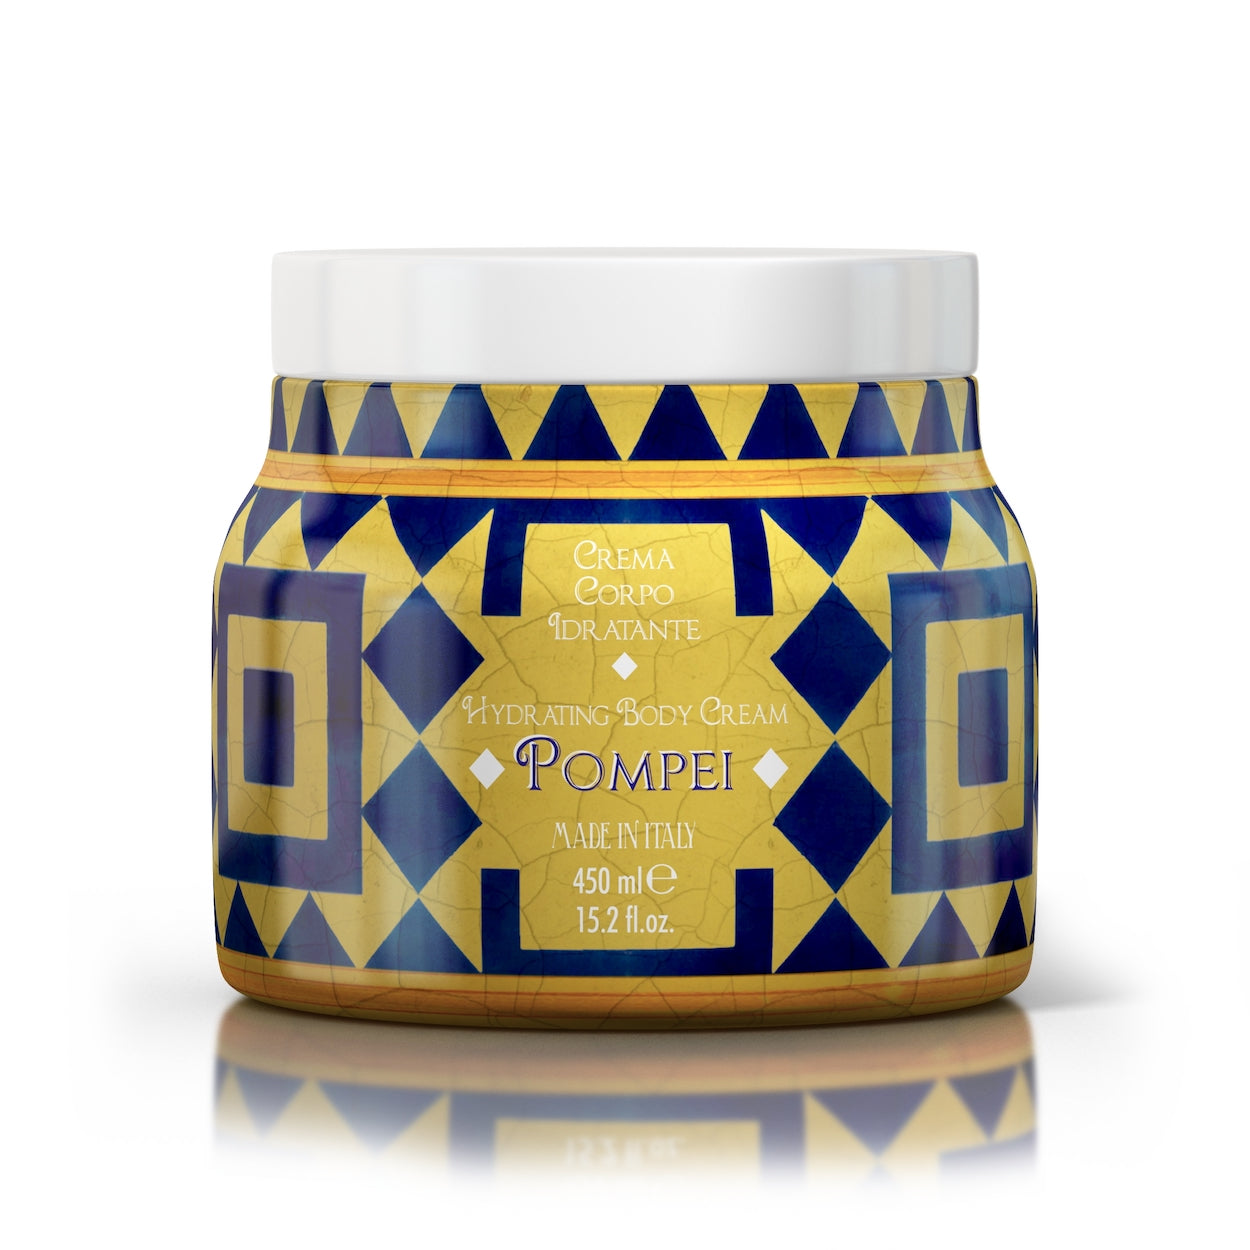 POMPEI - Maioliche Hydrating Body Cream 450ml